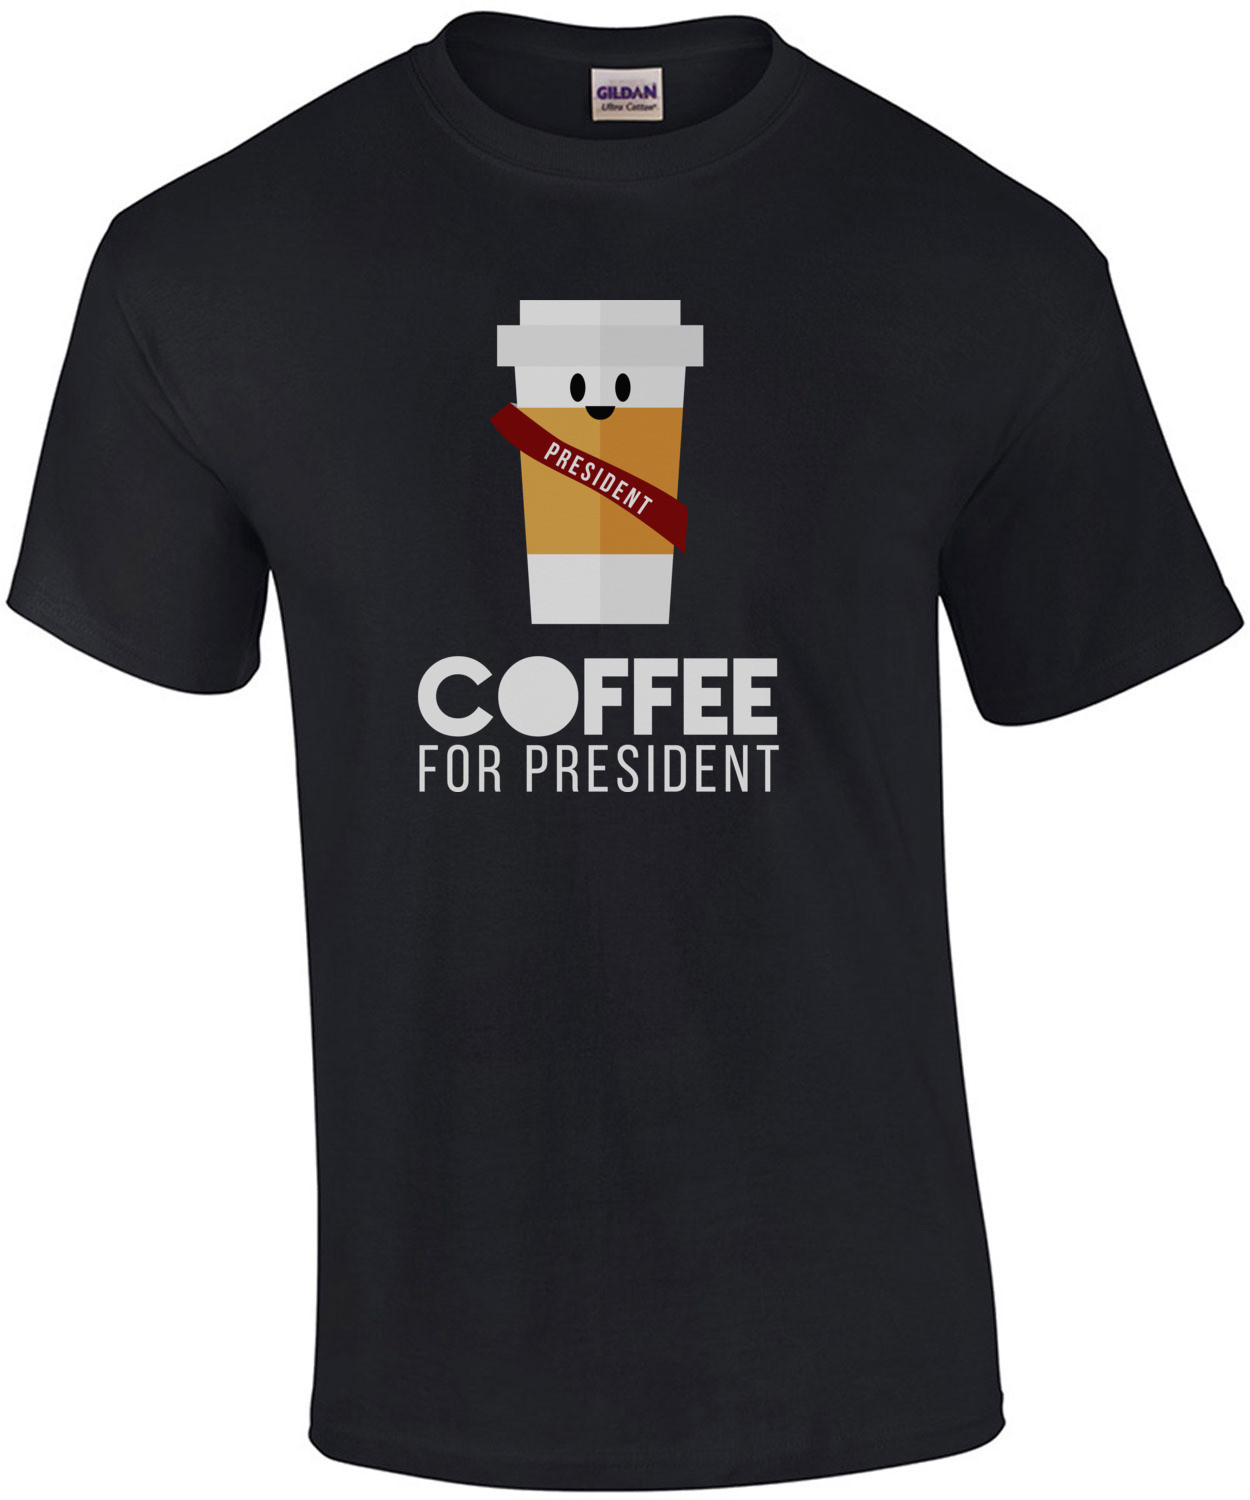 Coffee for president t-shirt